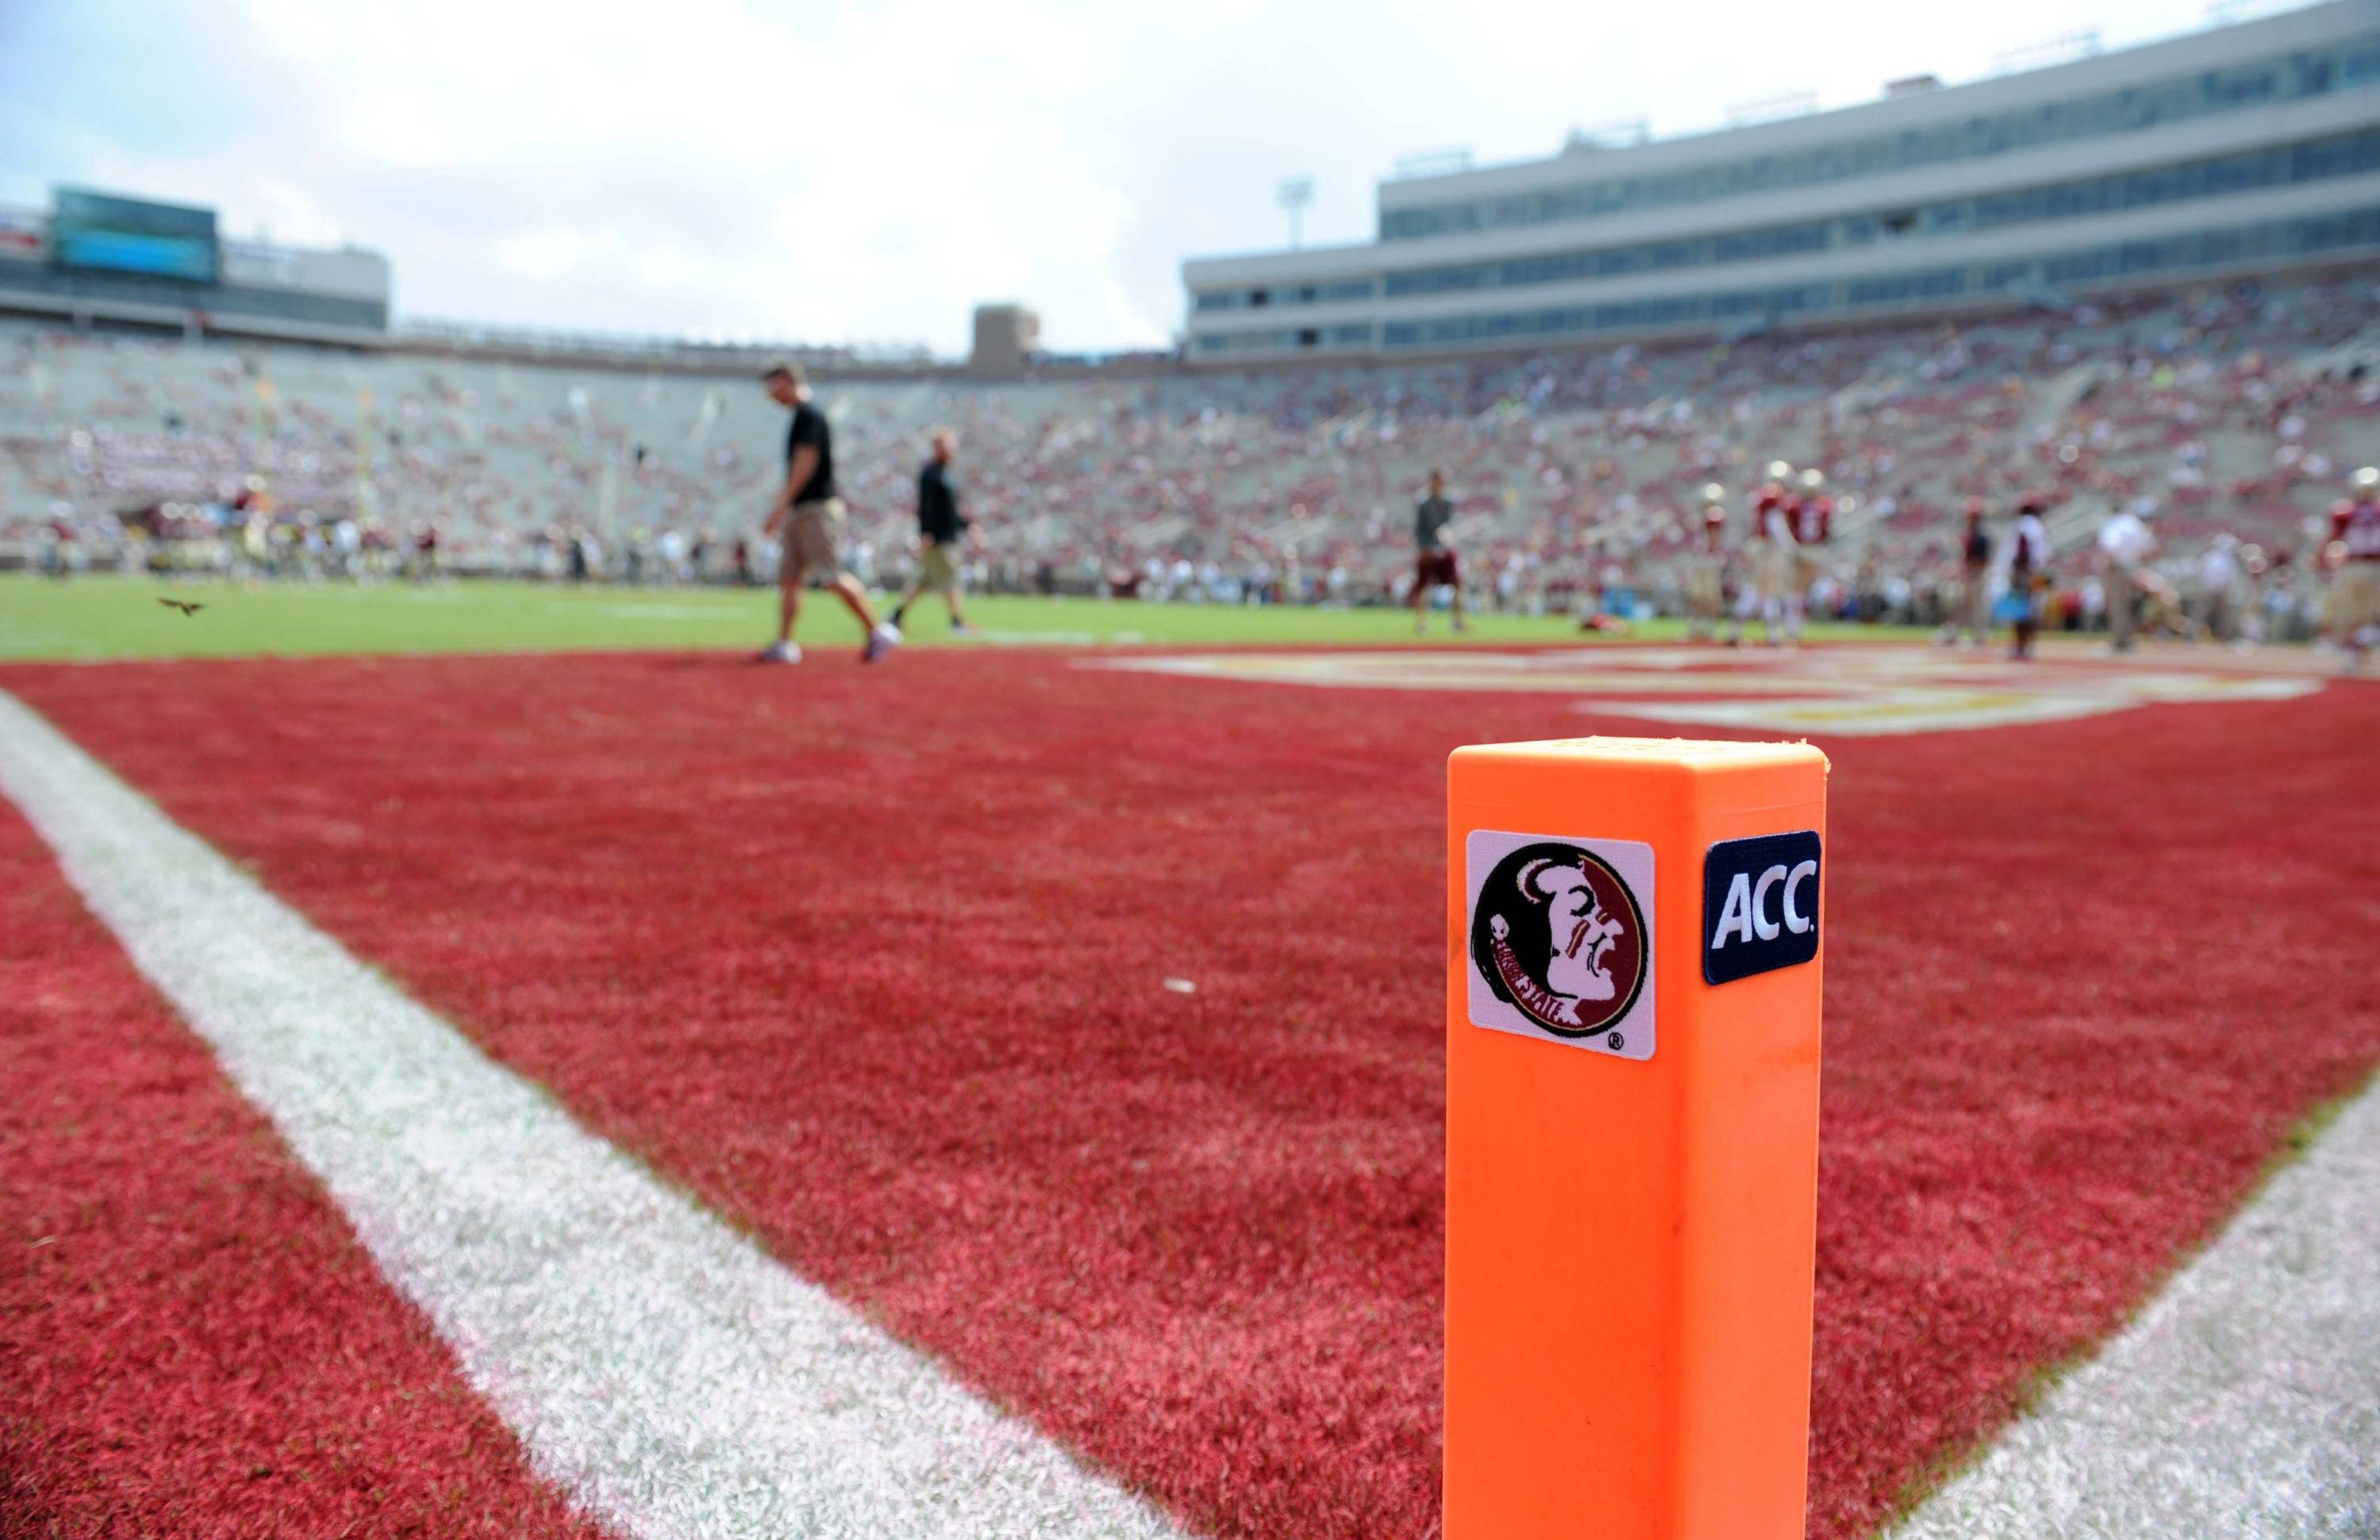 Sep 14, 2013; Tallahassee, FL, USA; A general view of the field before the Florida State Seminoles game against the Nevada Wolf Pack at Doak Campbell Stadium. Mandatory Credit: Melina Vastola-USA TODAY Sports